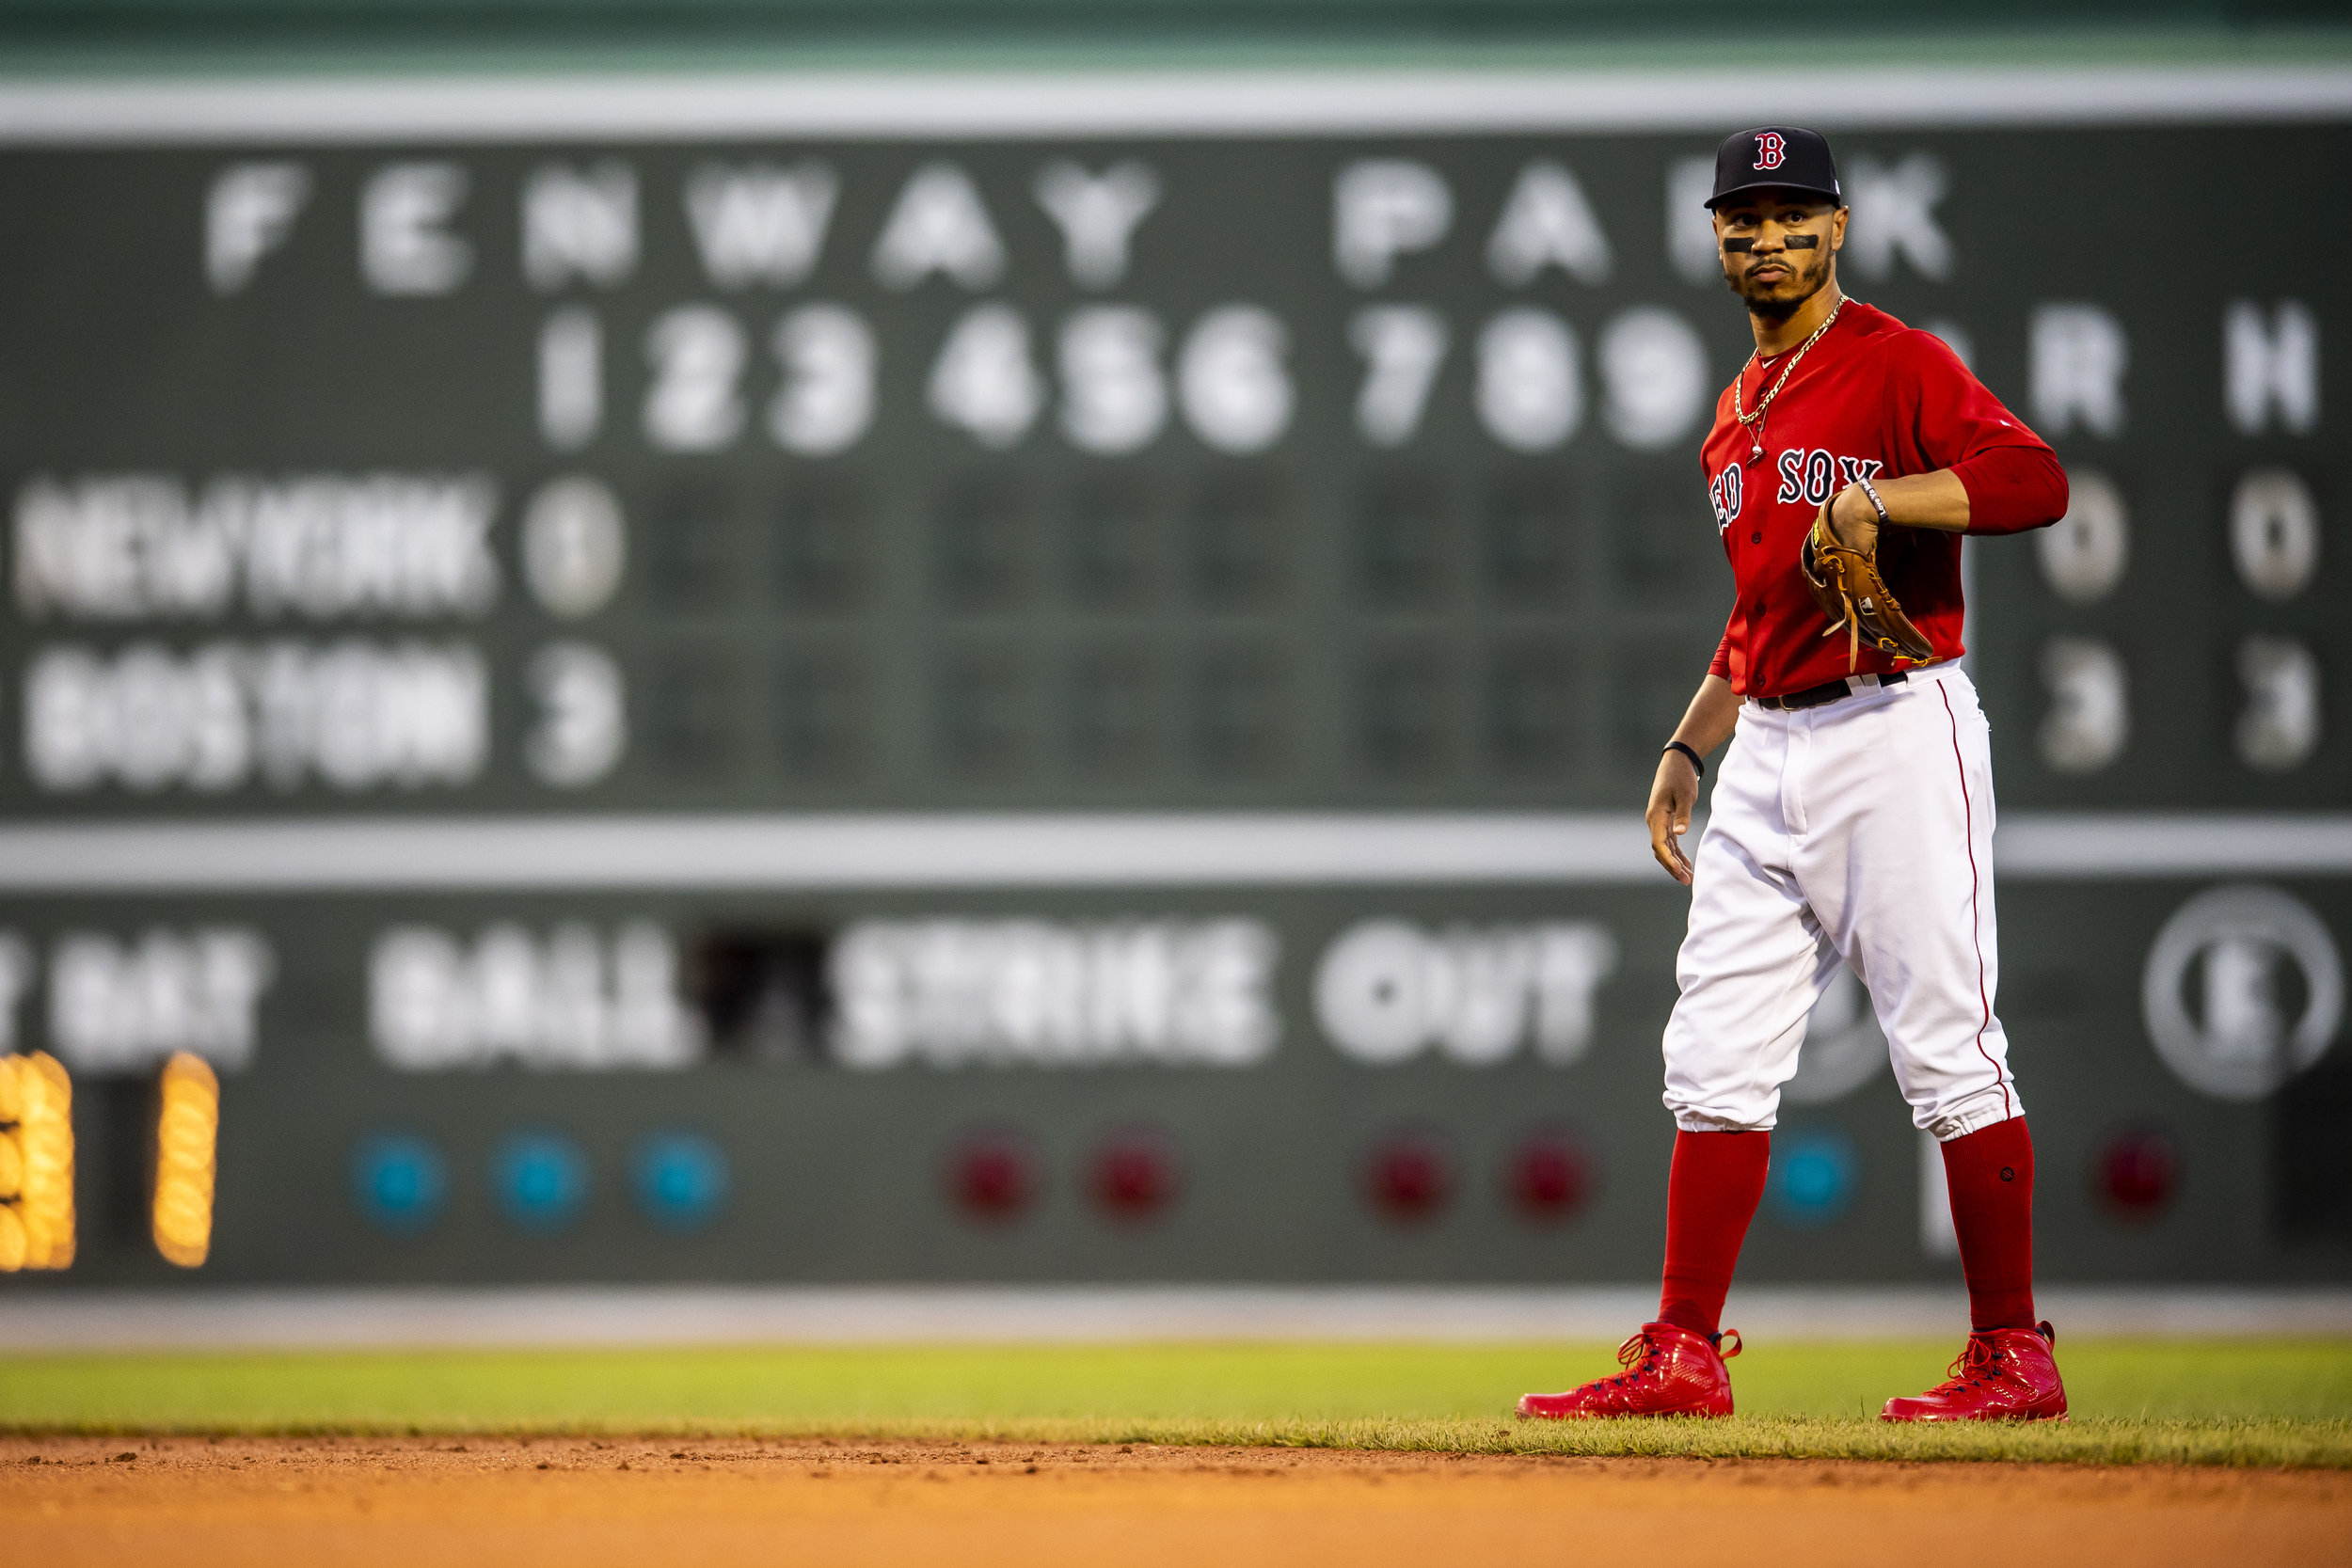 August 3, 2018, Boston, MA: Boston Red Sox second baseman Mookie Betts gets ready to field the ball as the Boston Red Sox face the New York Yankees at Fenway Park in Boston, Massachusetts on Friday, August 3, 2018. (Photo by Matthew Thomas/Boston Red Sox)